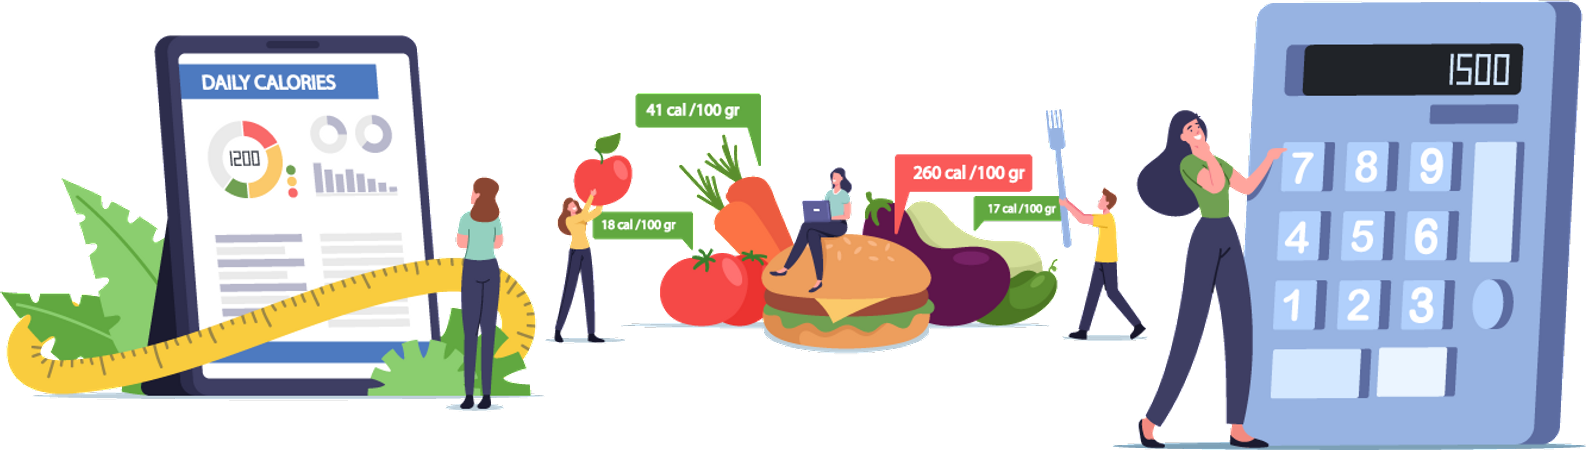 Fitness and diet mobile application Illustration